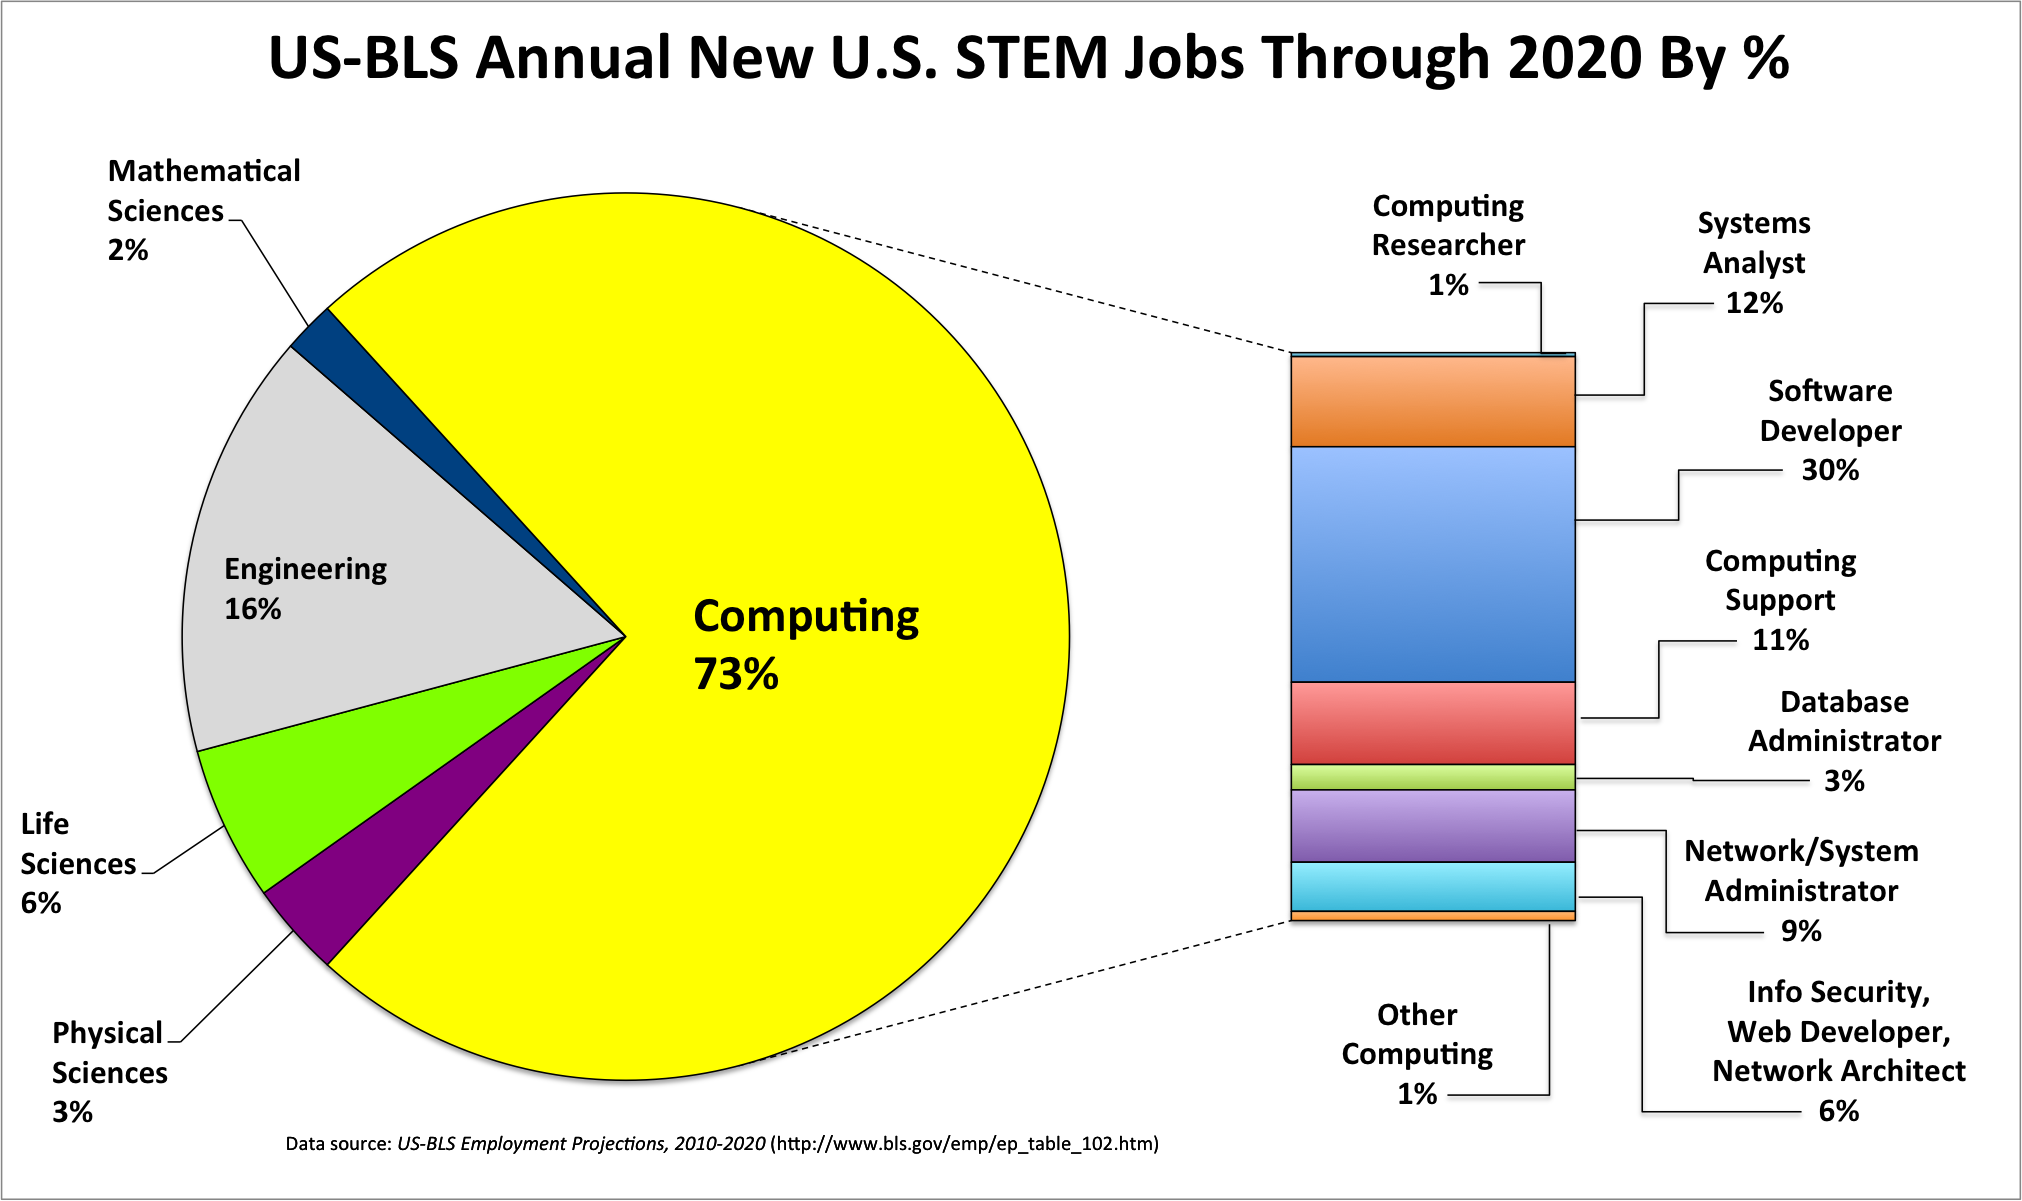 The U.S. Bureau of Labor predicts that between now and 2020,               73% of the new STEM jobs will be computing jobs